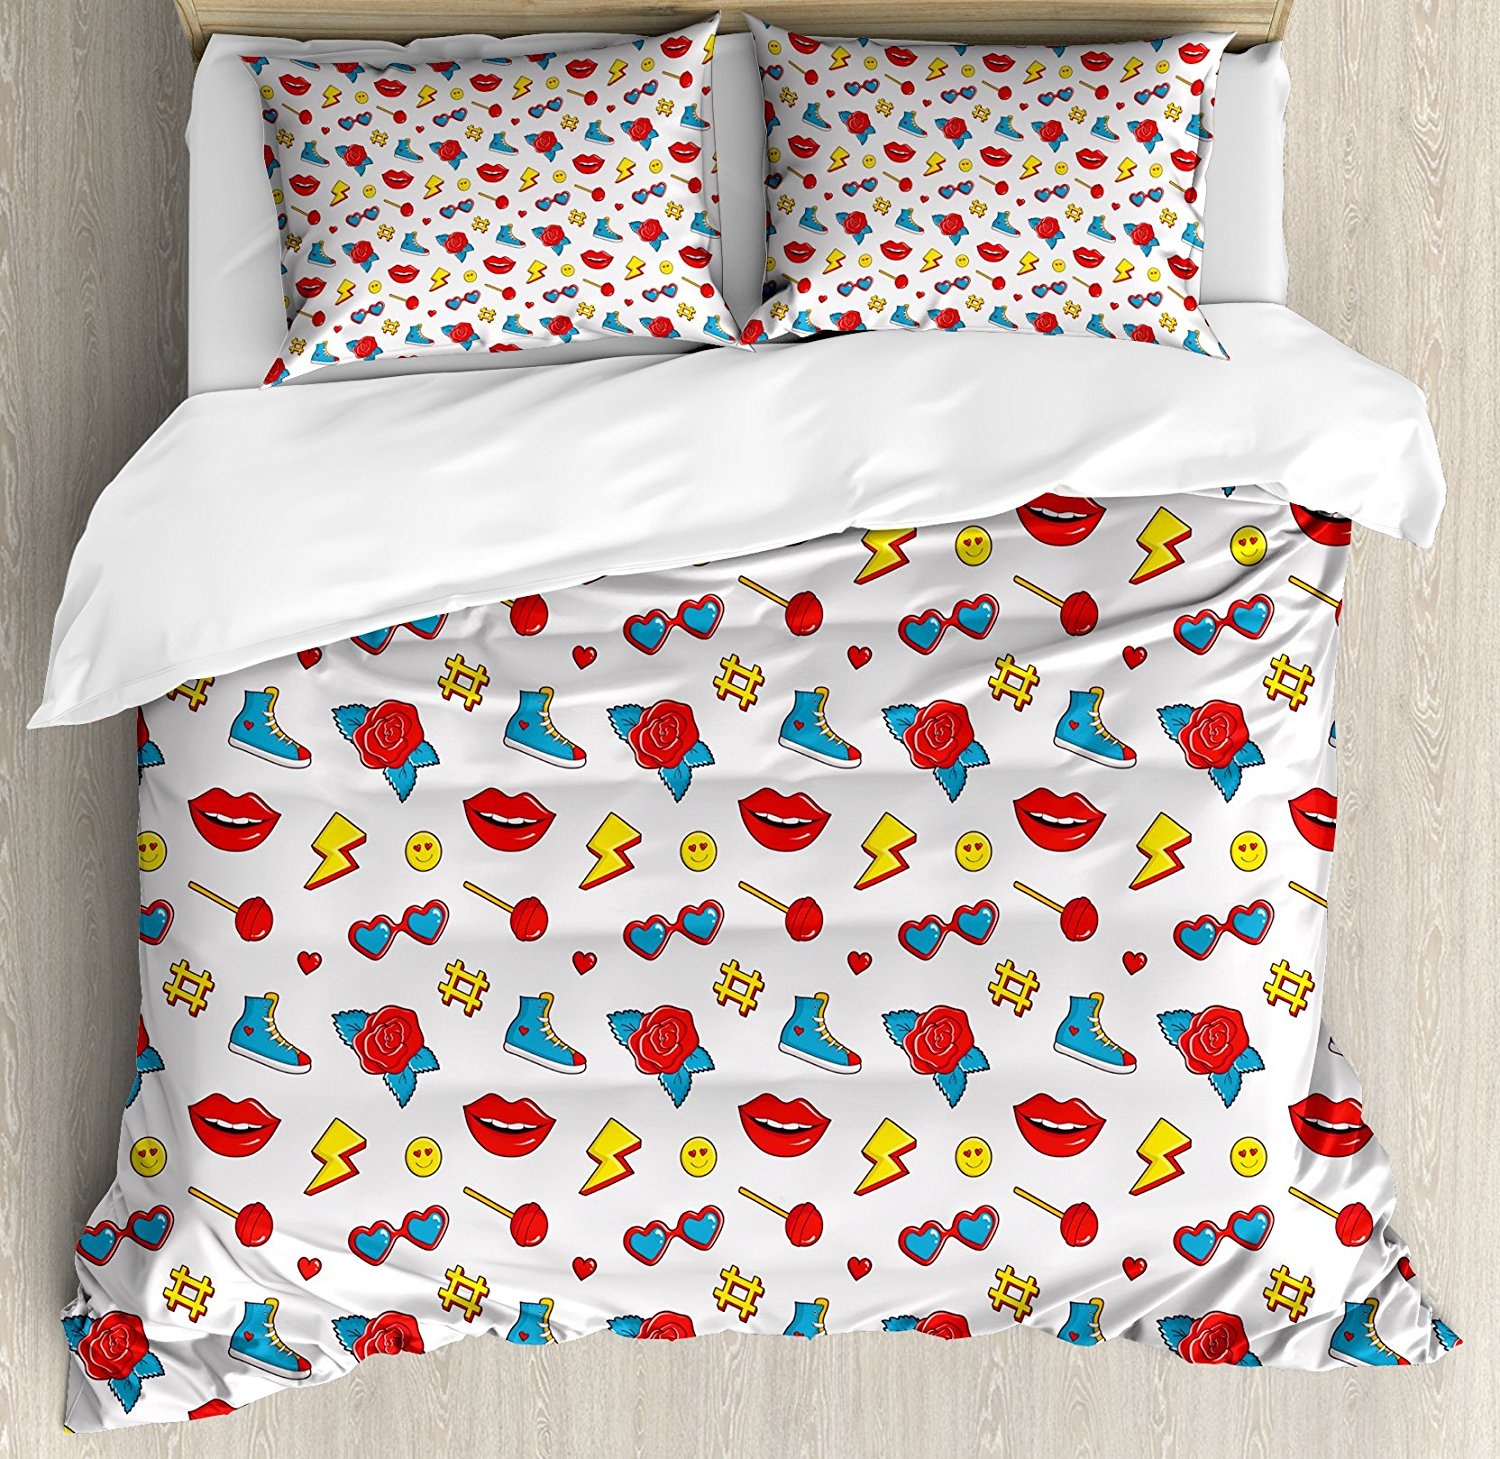 white duvet adults covers canada best comforter large of hipster size where quilt sets cool young buy to affordable bed unique cute tumblr linen for contemporary sheets place bedding